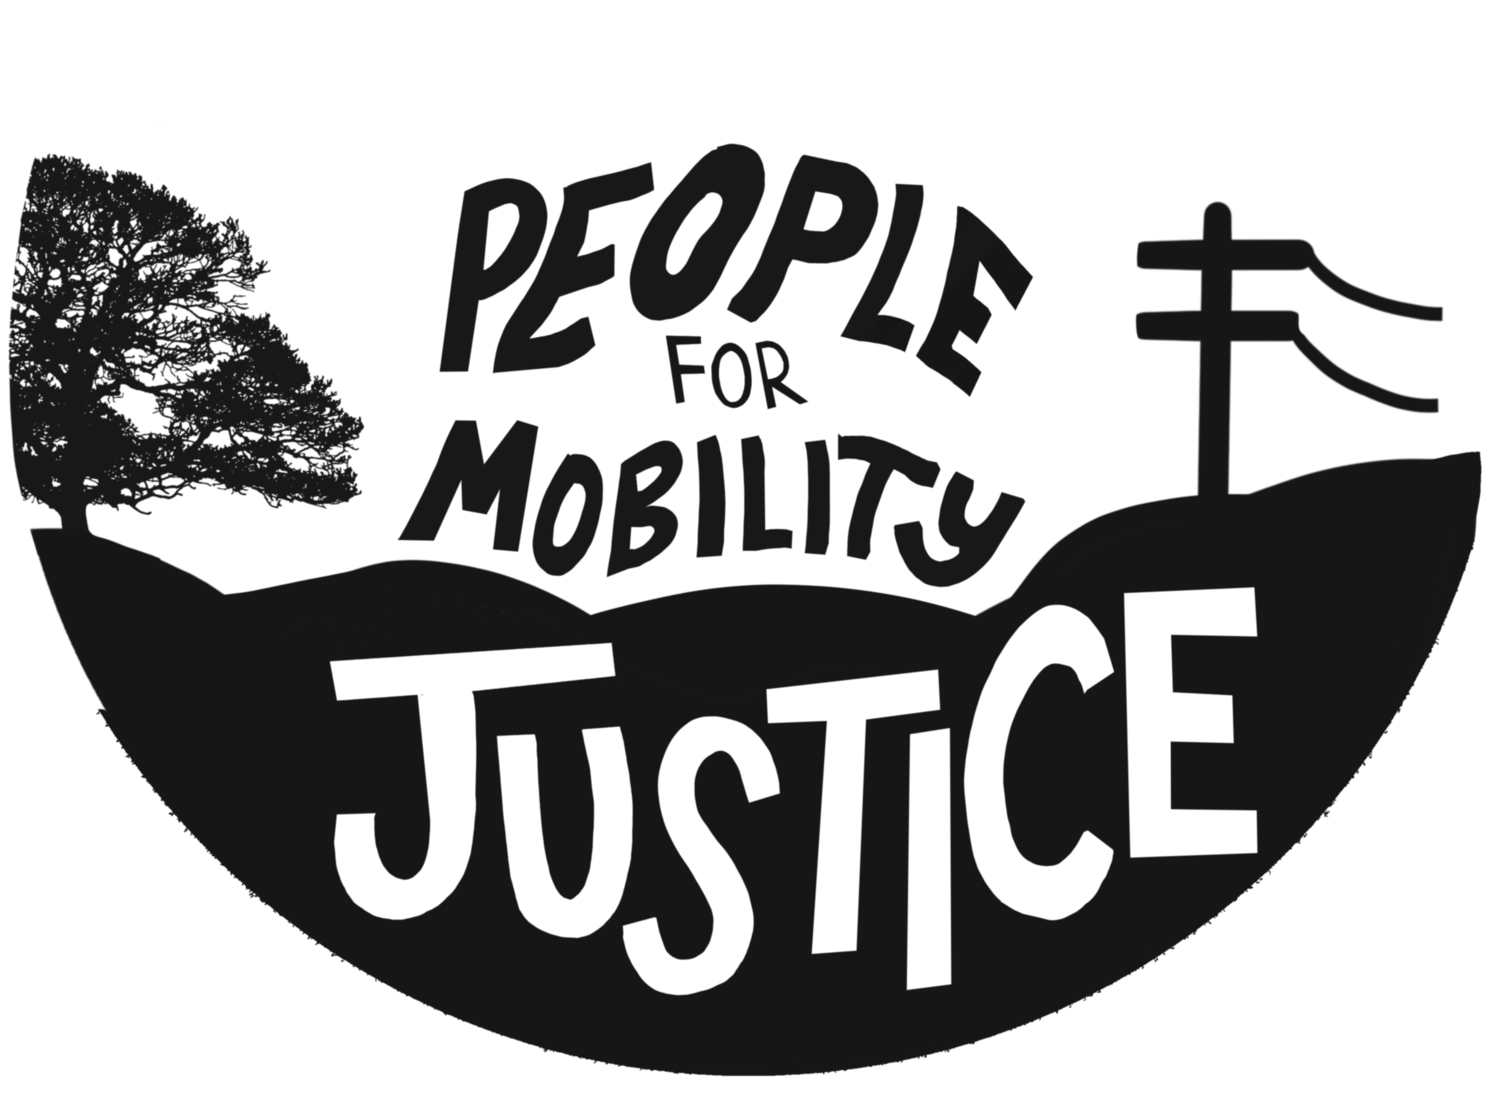 People For Mobility Justice